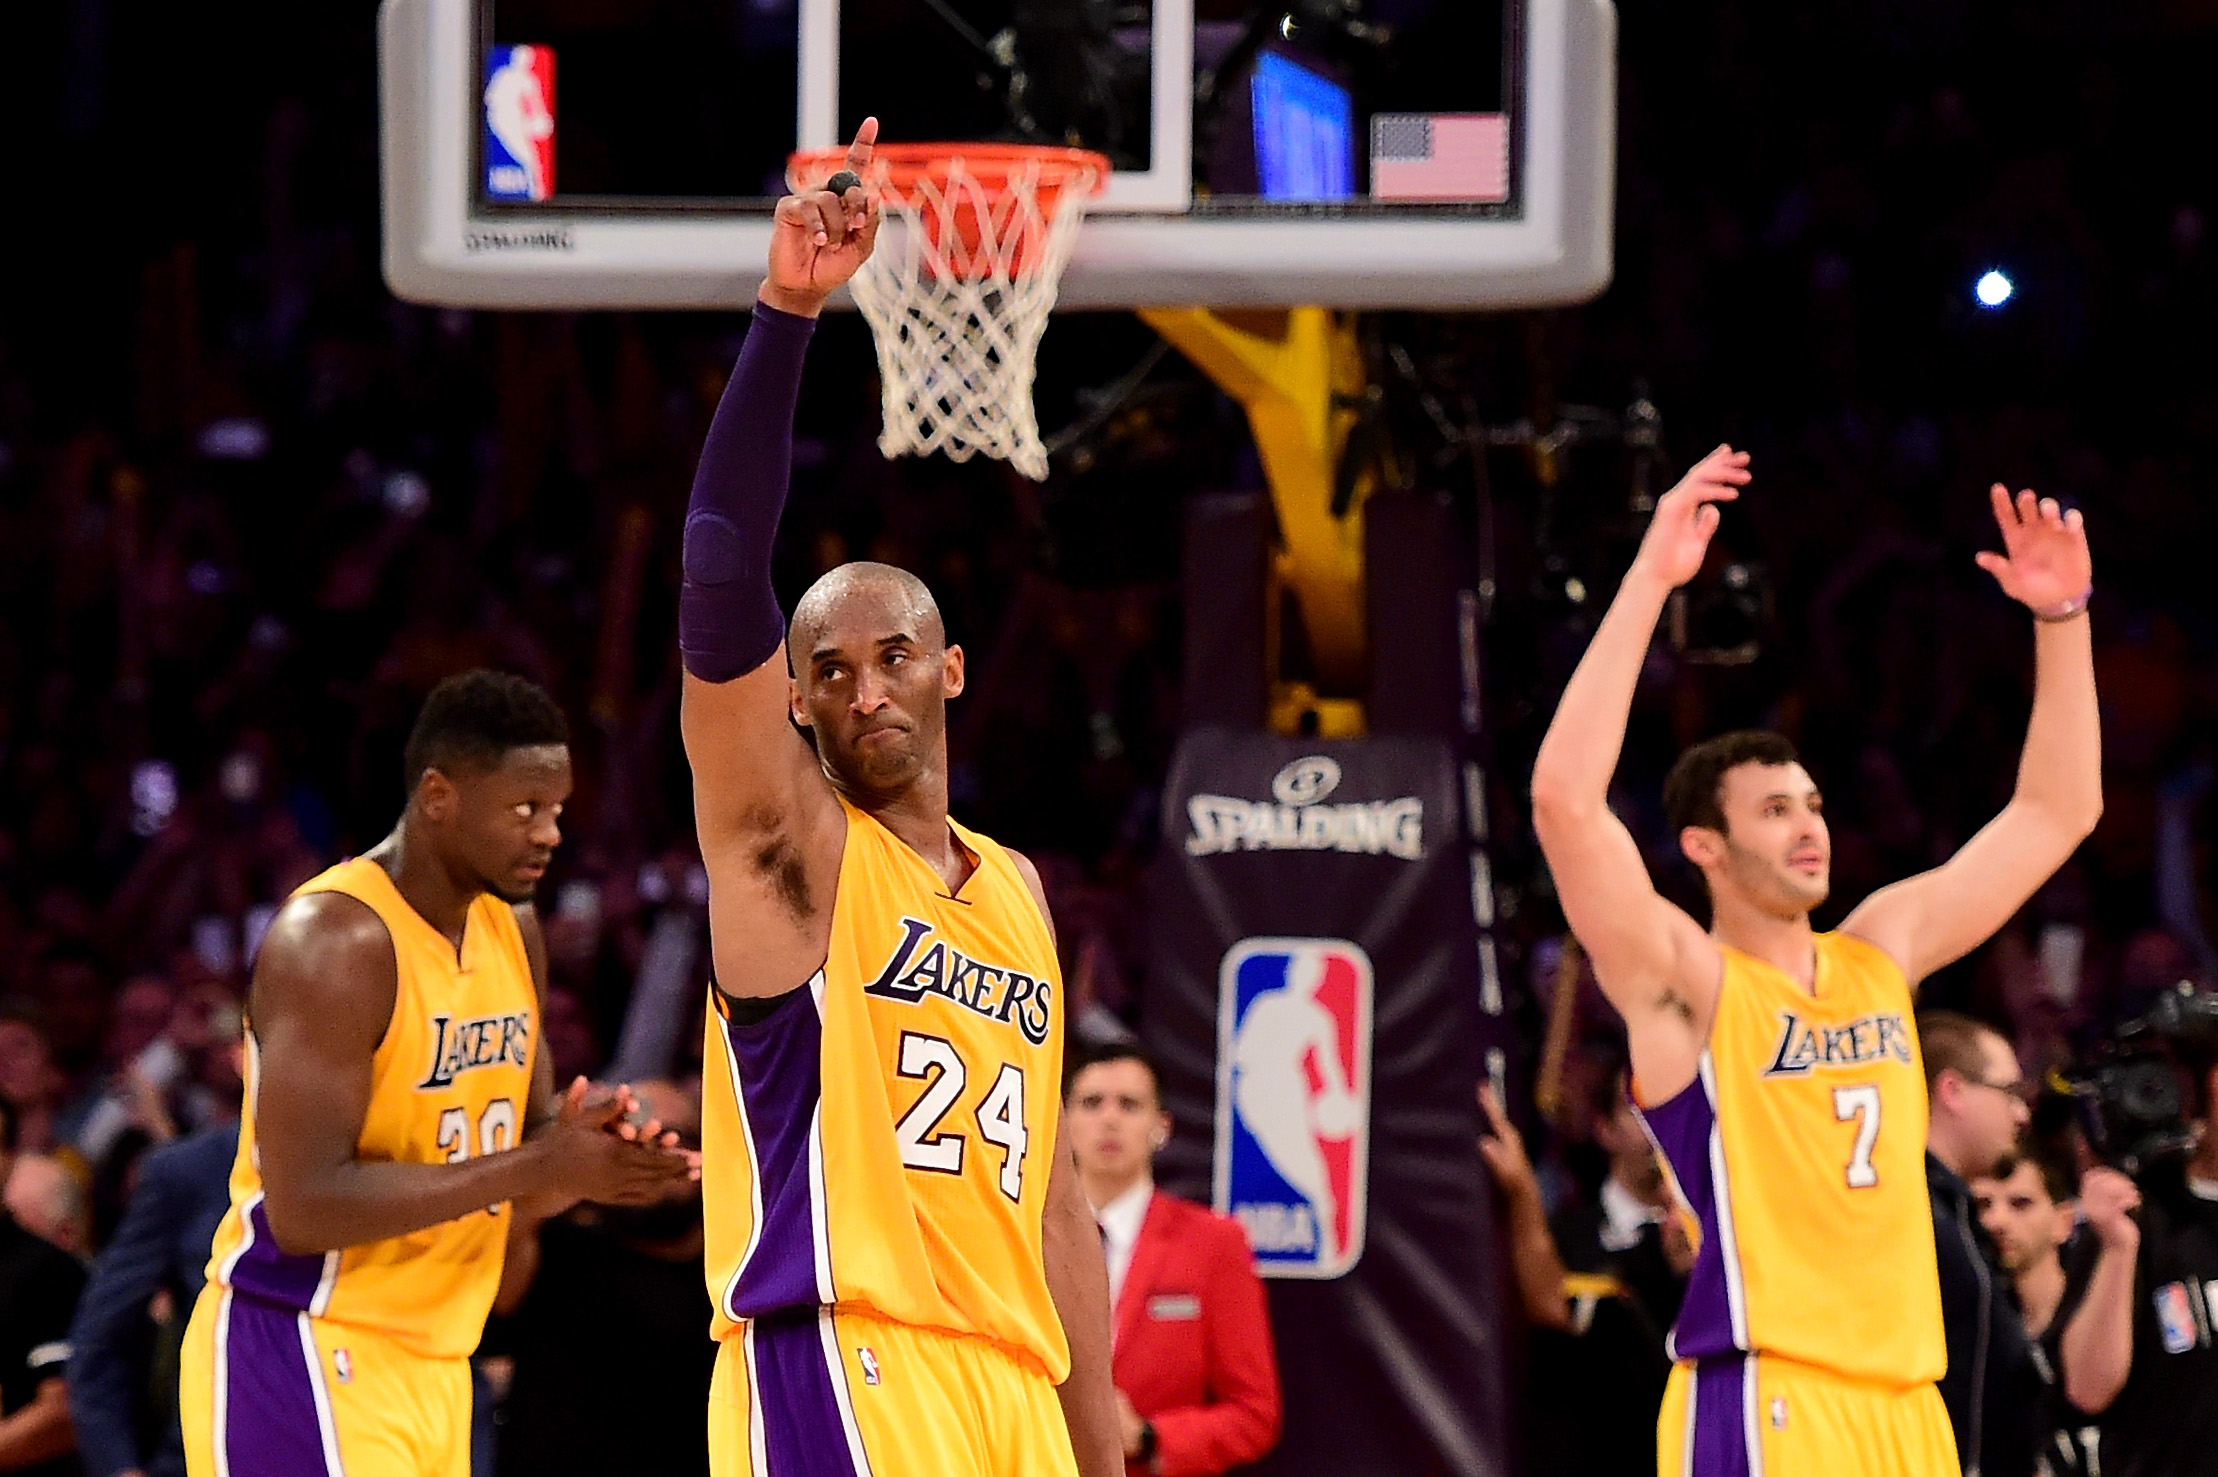 LOS ANGELES, CA - APRIL 13:  Kobe Bryant #24 of the Los Angeles Lakers waves to the crowd as he is taken out of the game after scoring 60 points against the Utah Jazz at Staples Center on April 13, 2016 in Los Angeles, California. NOTE TO USER: User expressly acknowledges and agrees that, by downloading and or using this photograph, User is consenting to the terms and conditions of the Getty Images License Agreement.  (Photo by Harry How/Getty Images)